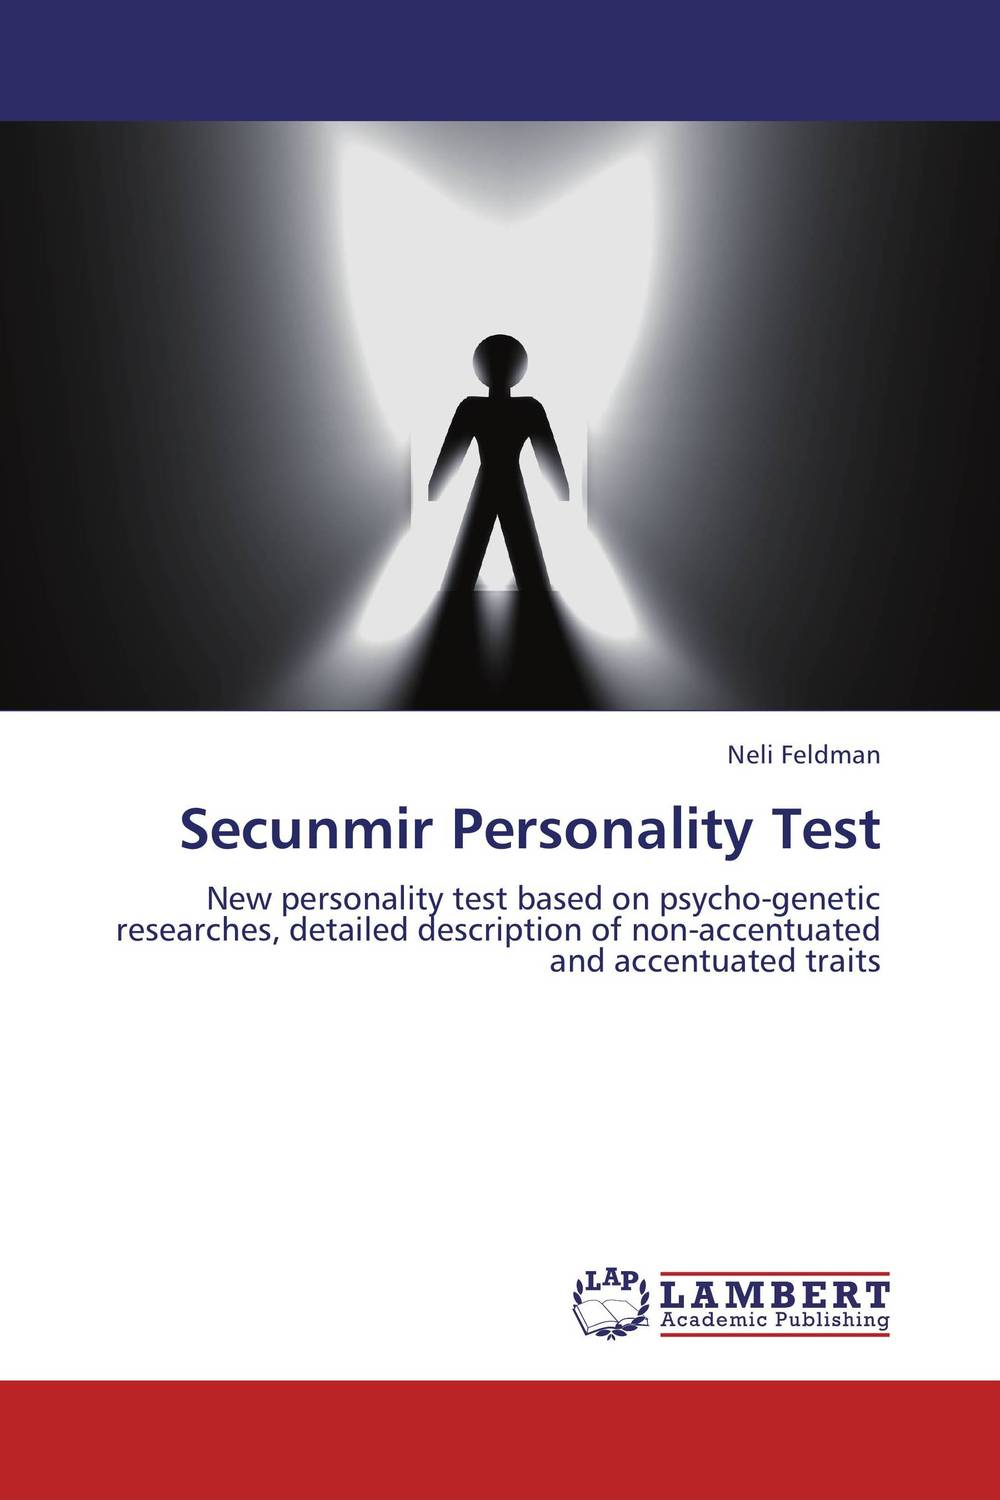 Secunmir Personality Test personality traits and interpretaion